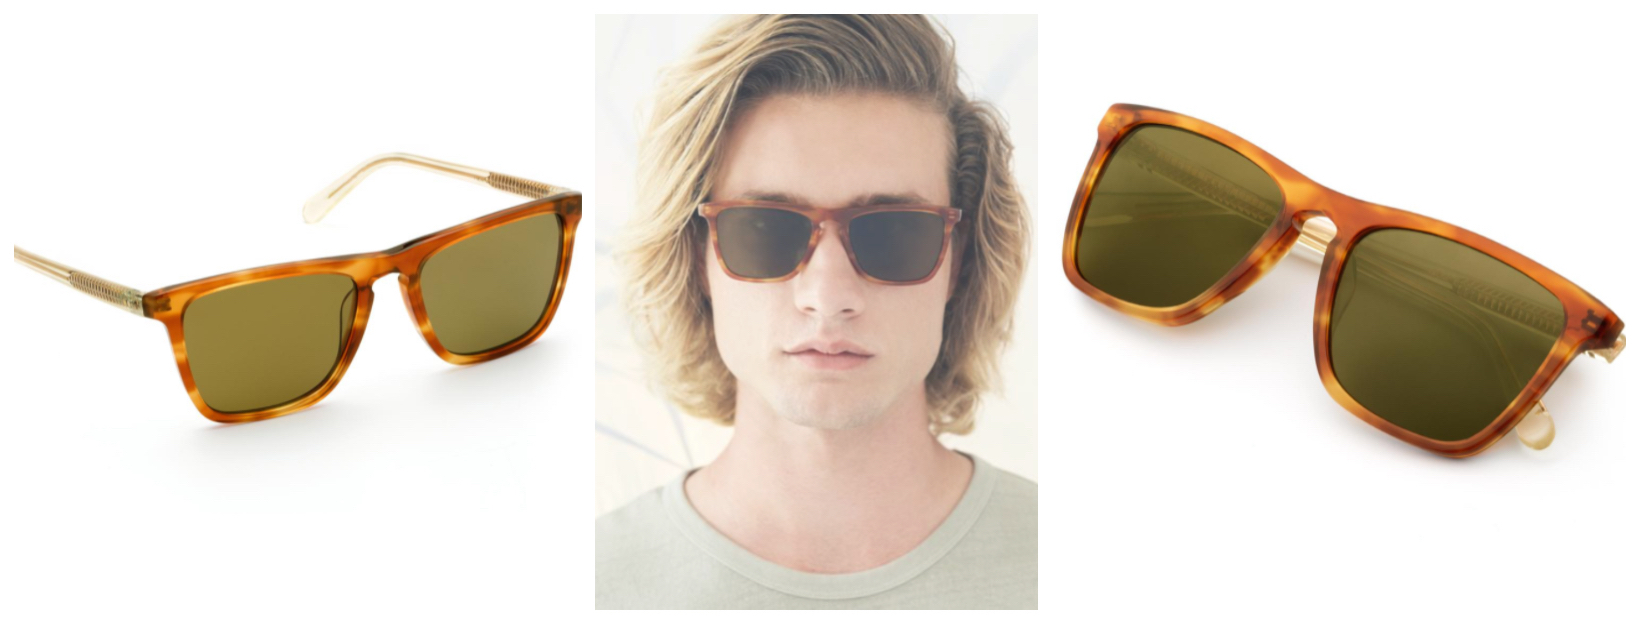 jj eyes Homewood Fairhope sunglasses